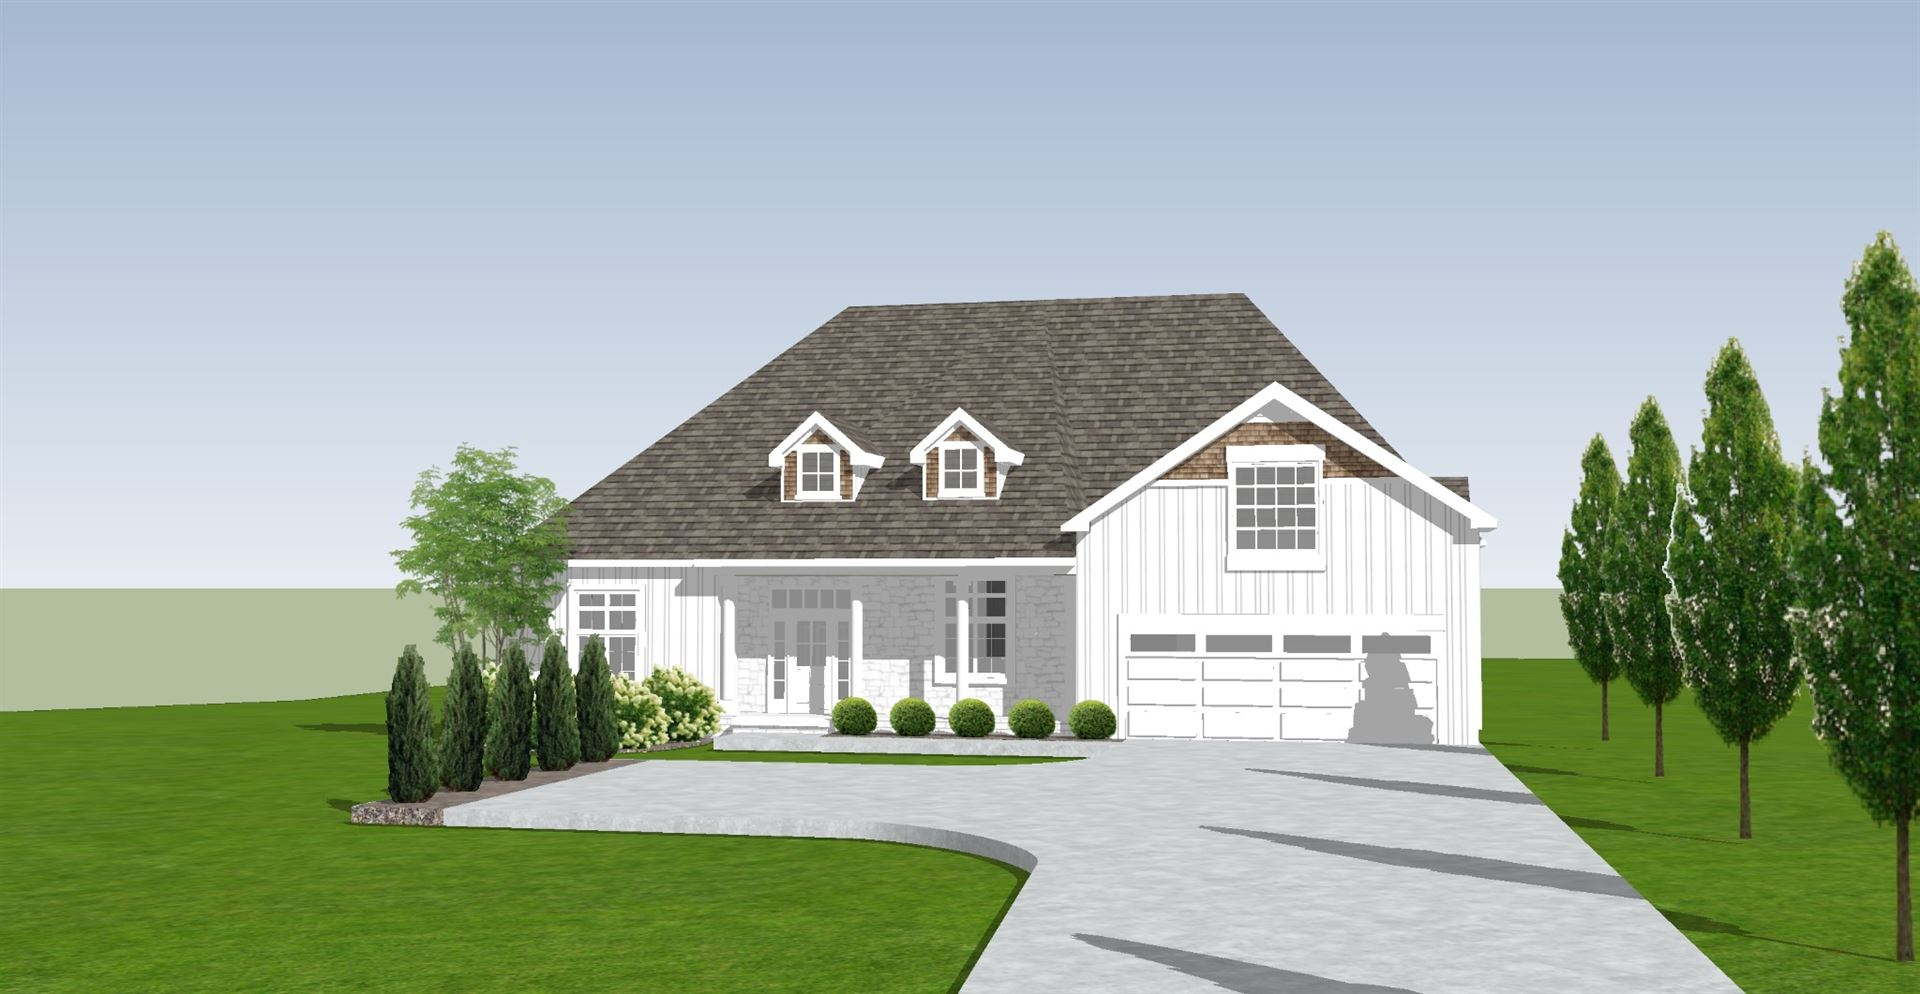 Photo of 6249 North New Hope Rd, Hermitage, TN 37076 (MLS # 2289683)